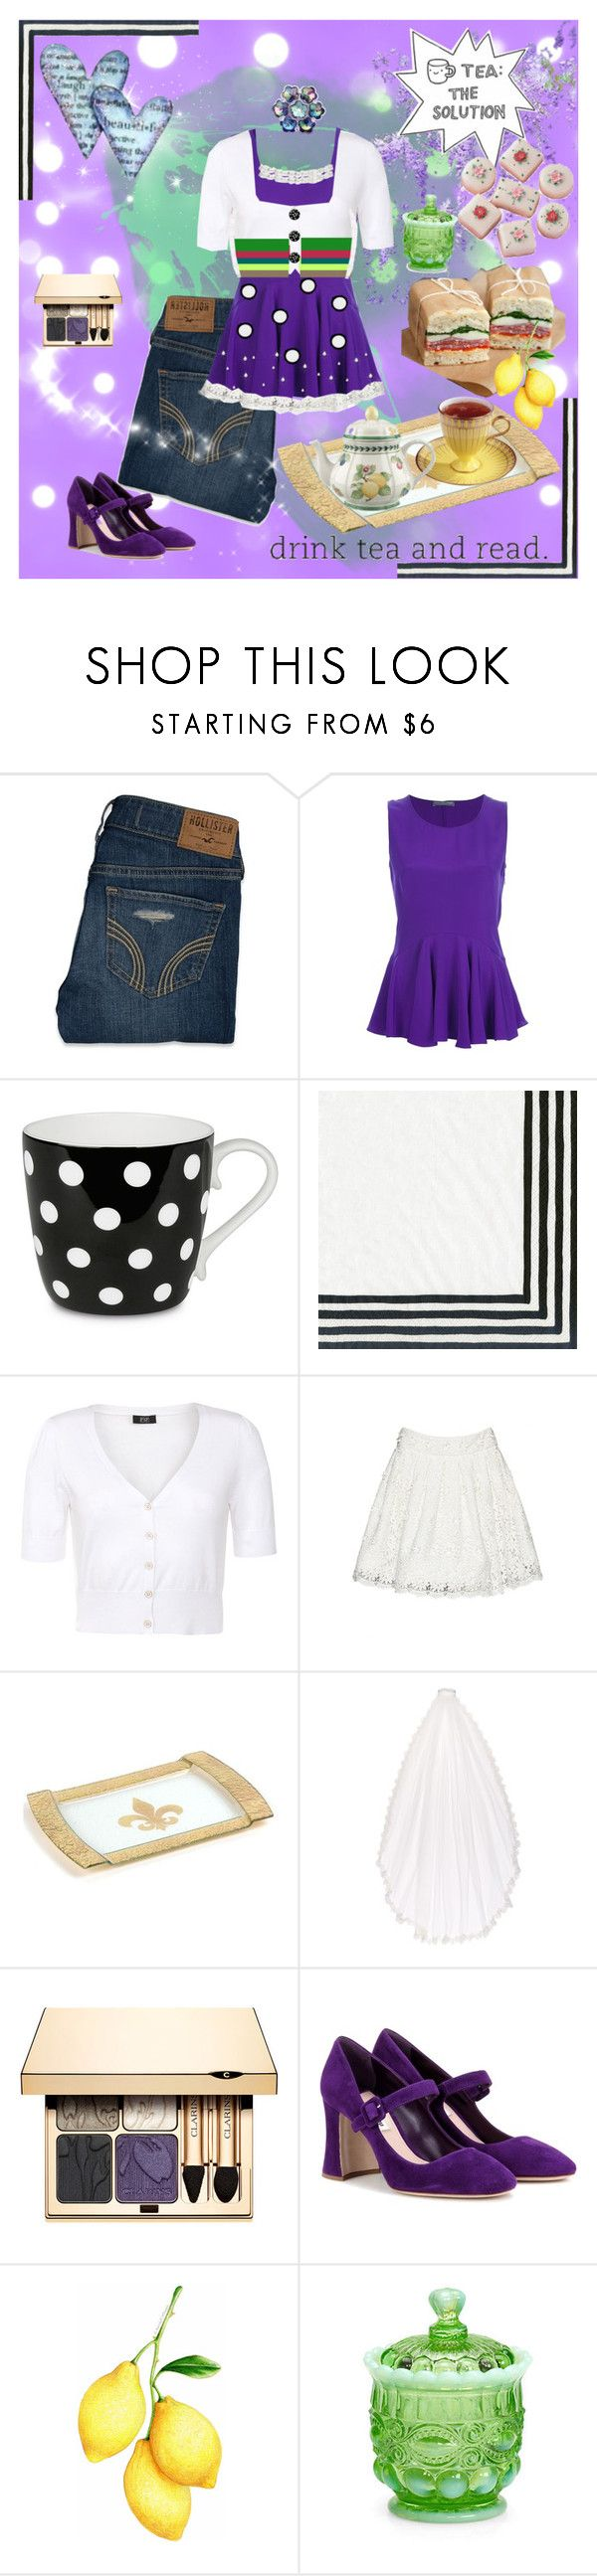 """FOR MY SWEET-TEA"" by kalenalexis ❤ liked on Polyvore featuring Hollister Co., Alexander McQueen, Könitz, Caspari, Alice + Olivia, Nicole Miller, Clarins, Miu Miu, Mosser Glass and Villeroy & Boch"